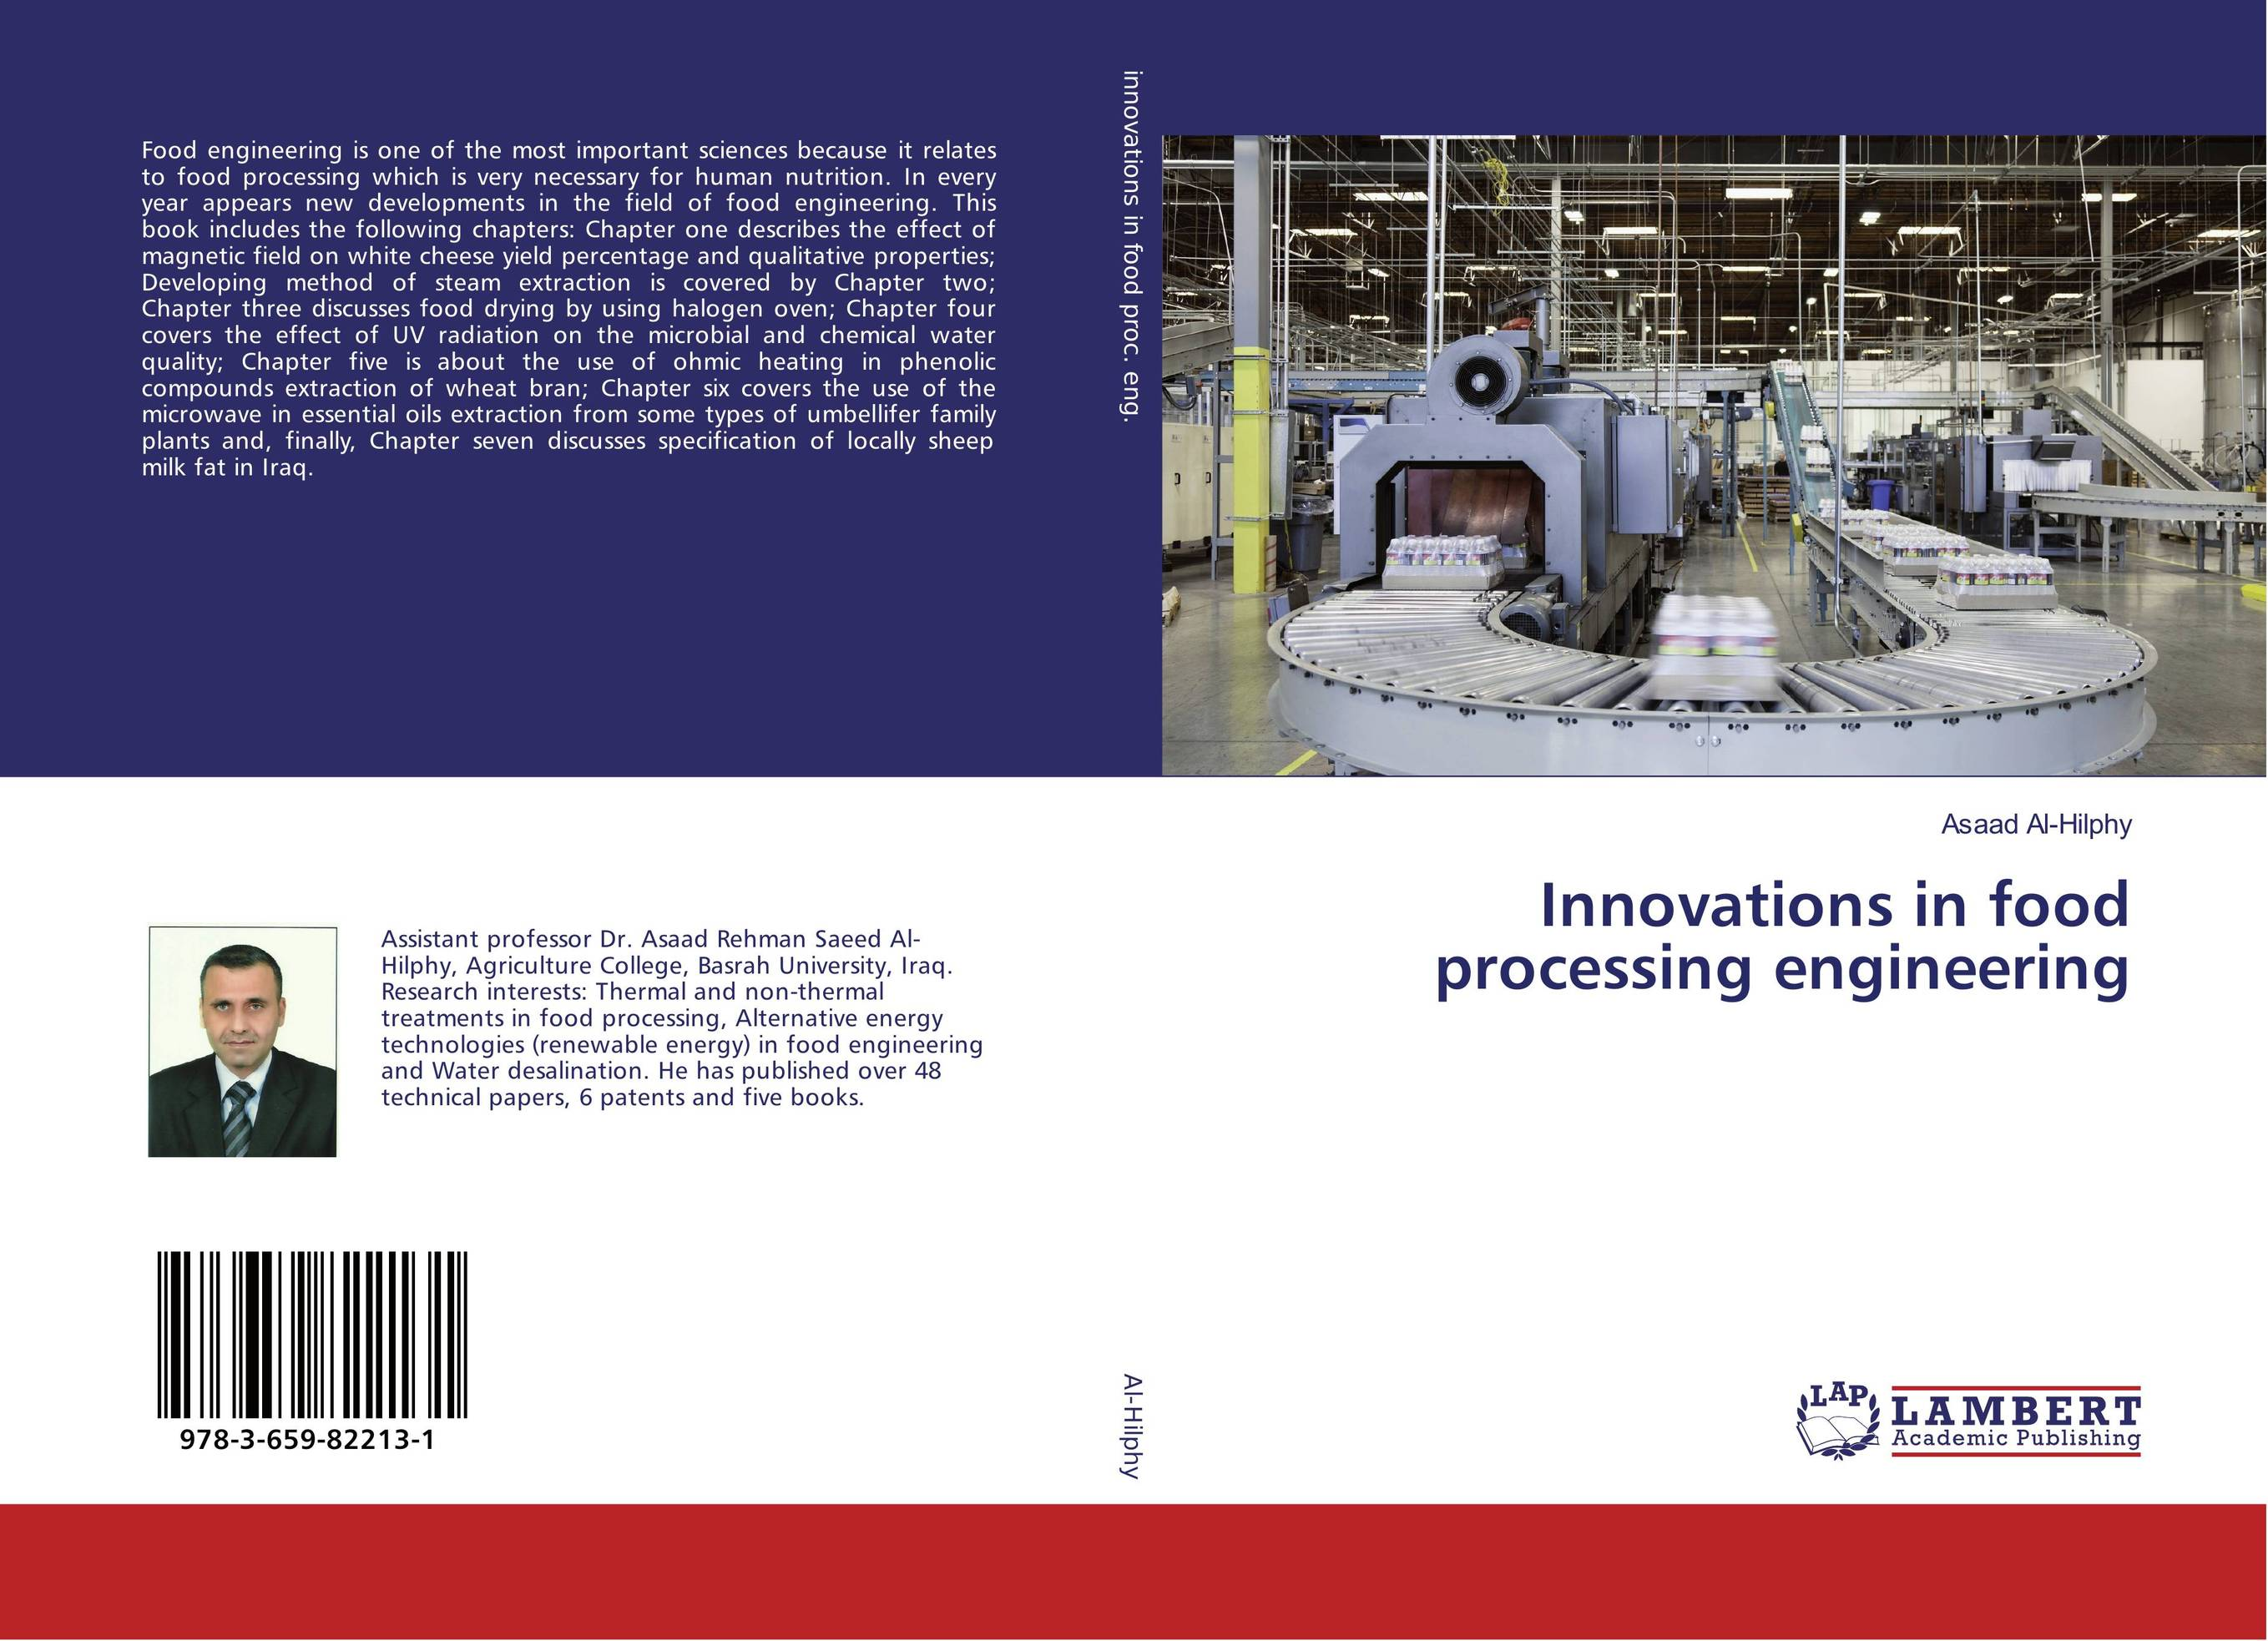 Innovations in food processing engineering application of pulsed ultra violet light in food processing